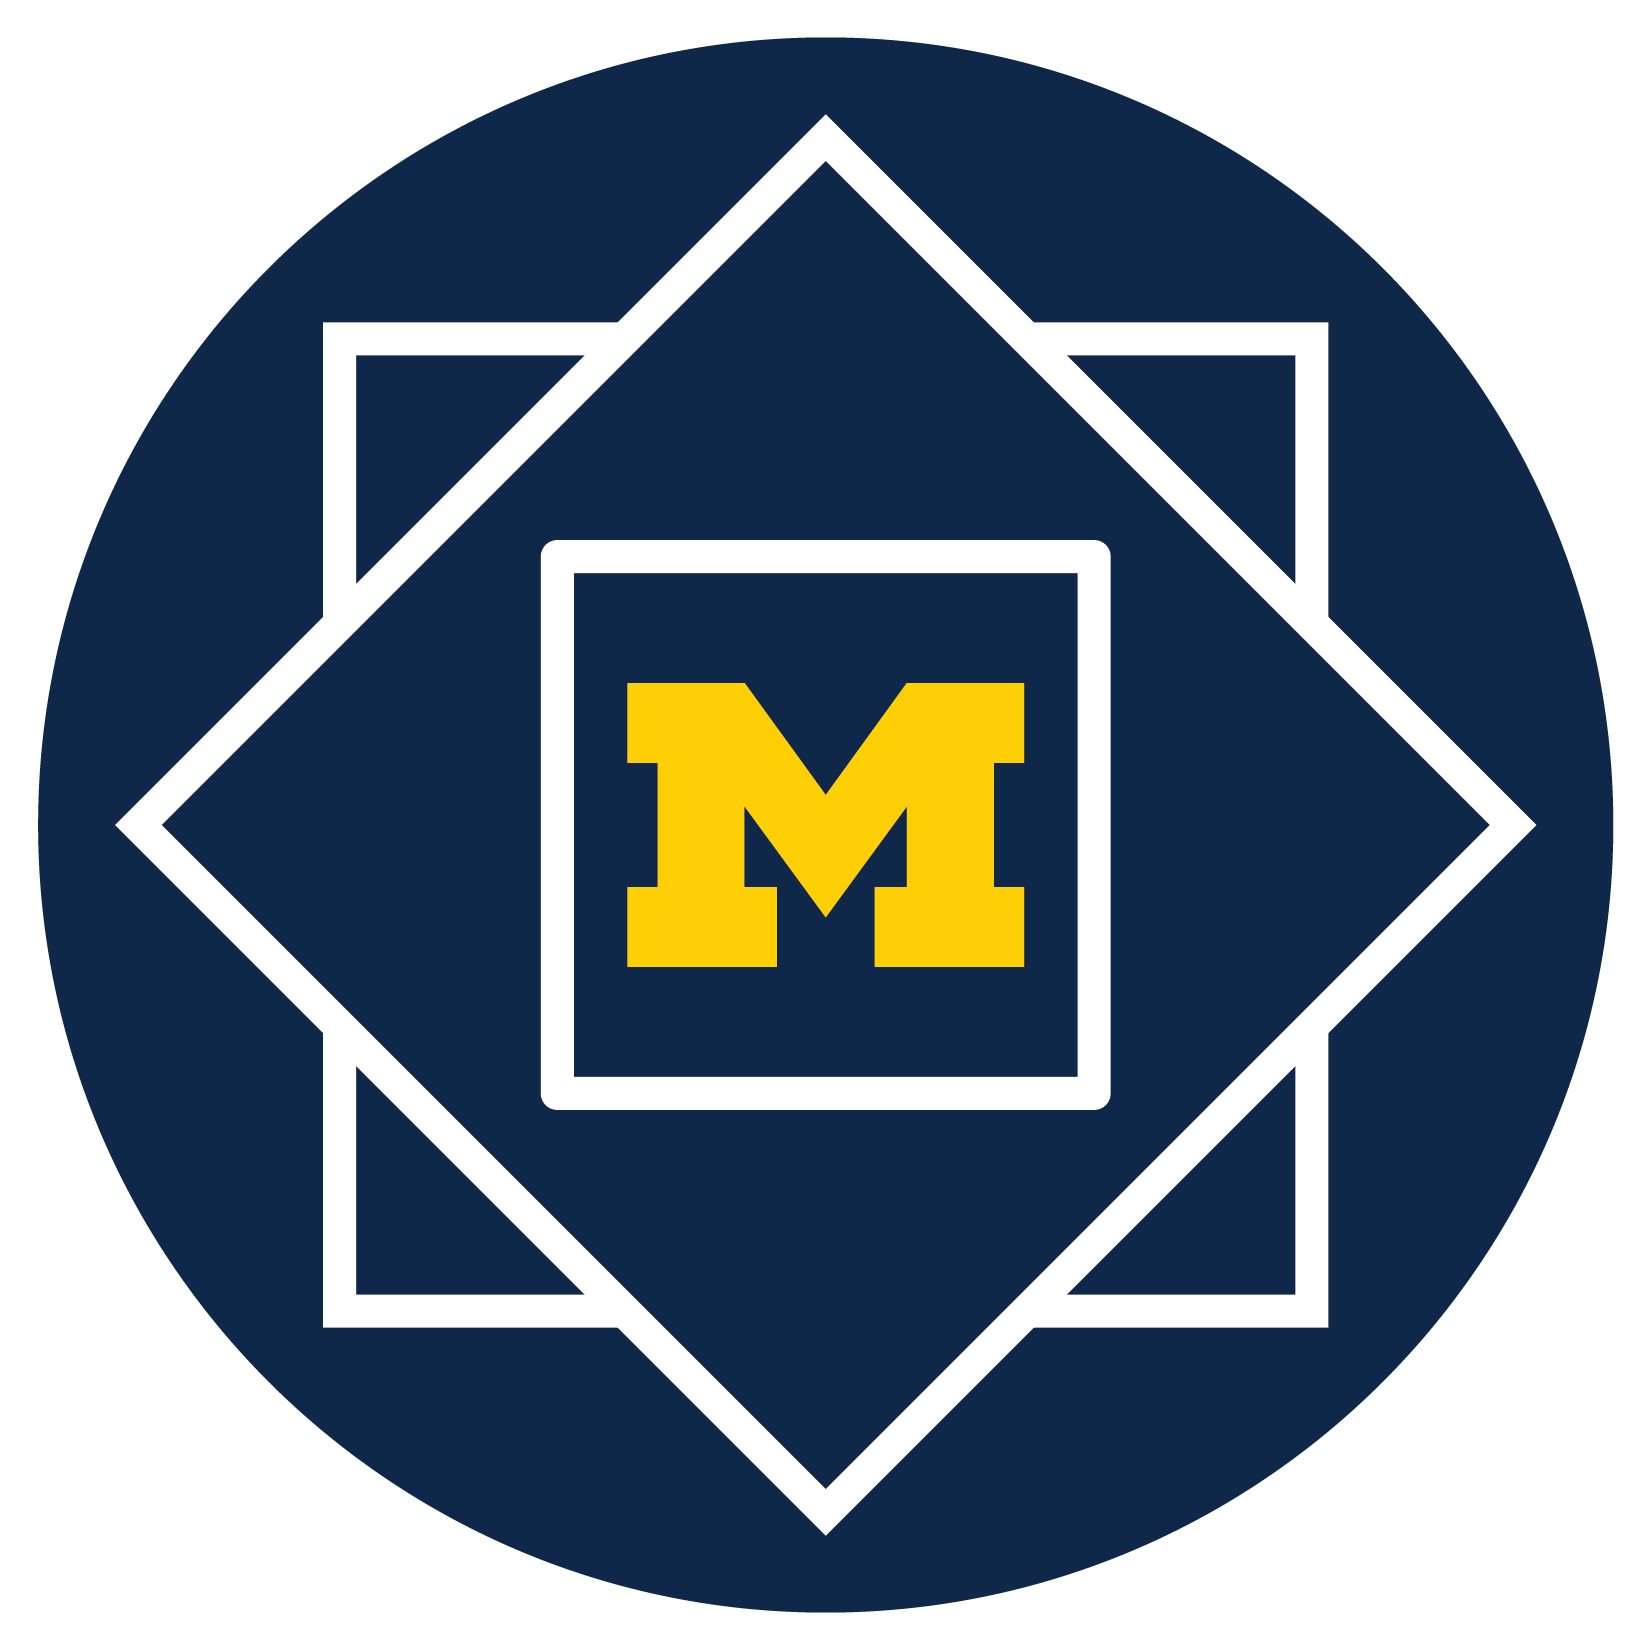 University of Michigan Alumni Relations logo